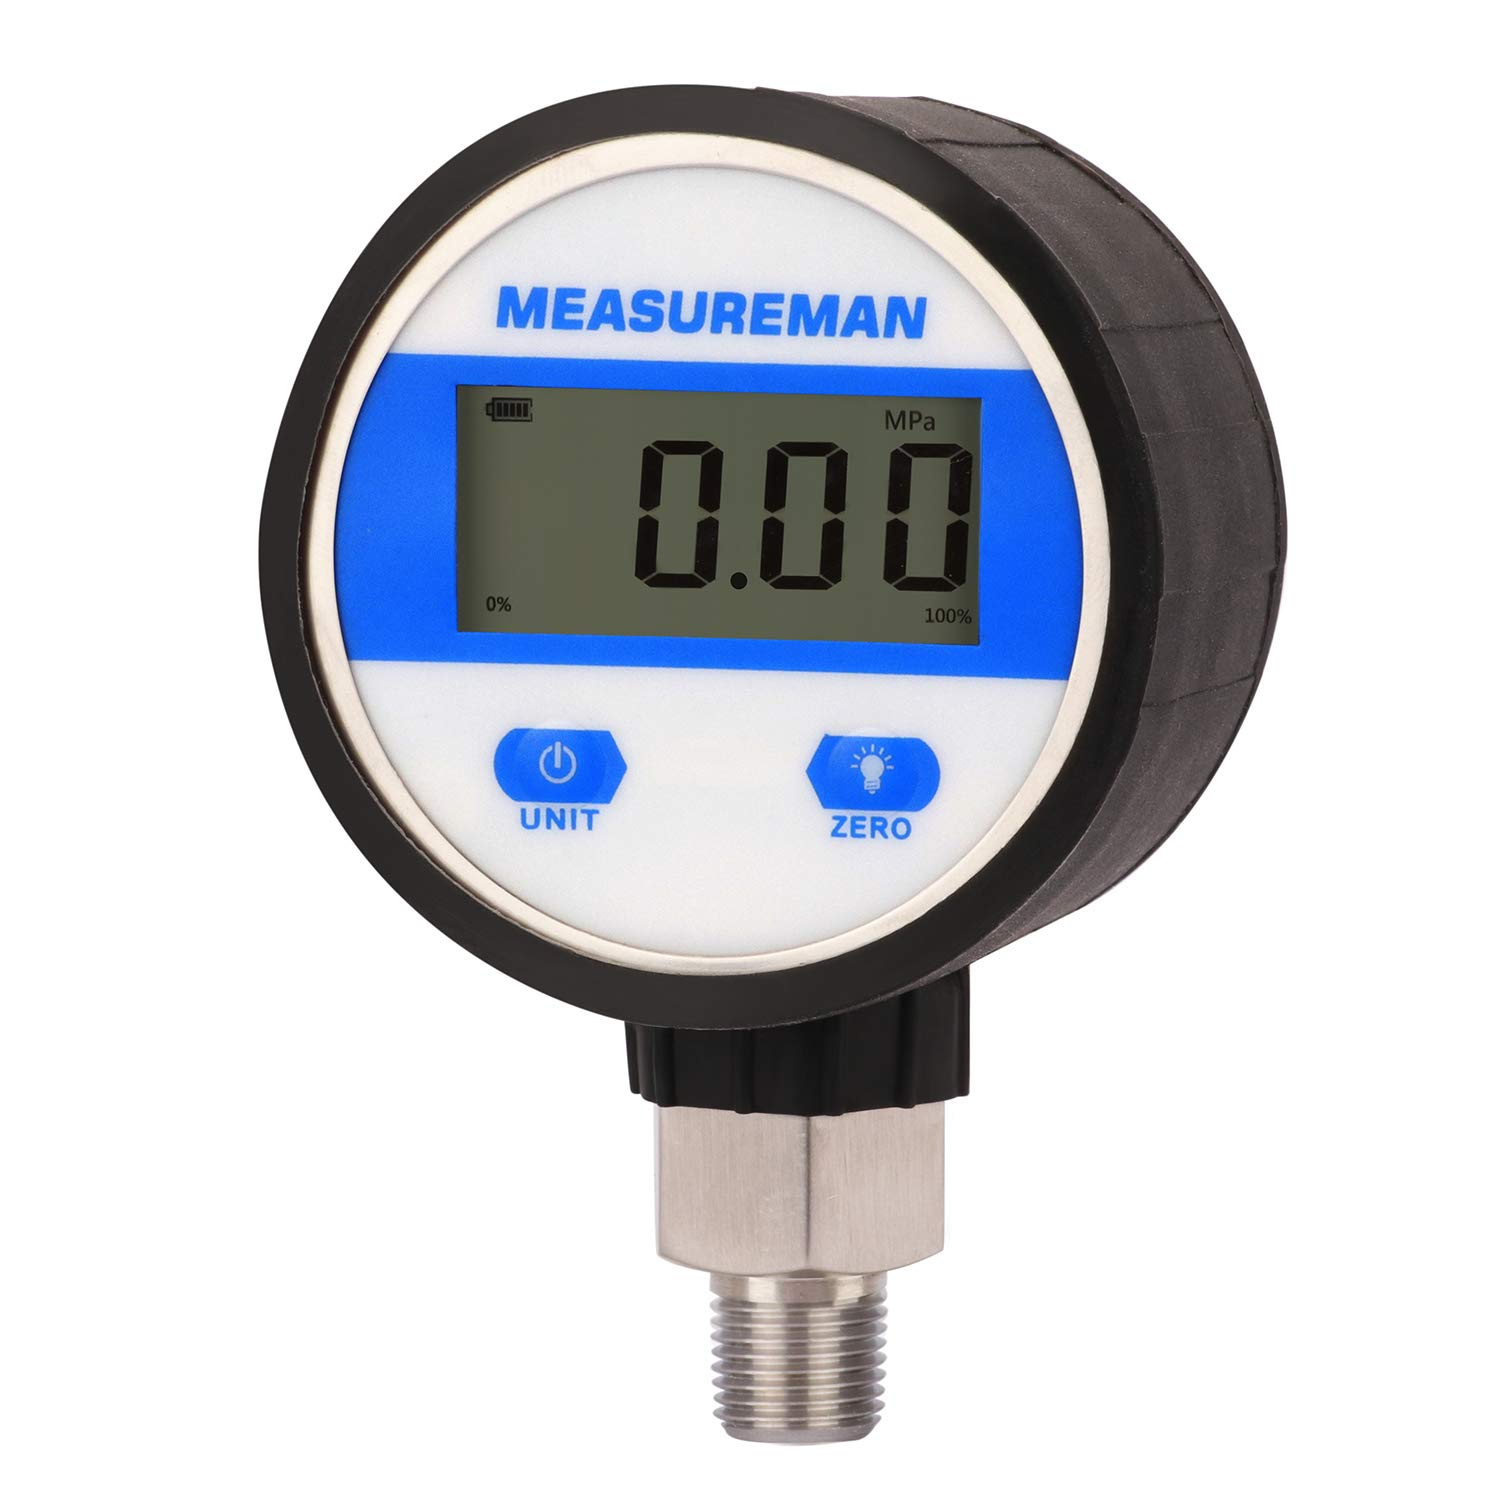 "Measureman 2-1/2"" dial, Digital Industrial Vacuum Gauge with 1/4""NPT Lower Mount, Stainless Steel case and Connection, 15psi, 1%,Battery Powered, with LED Light"